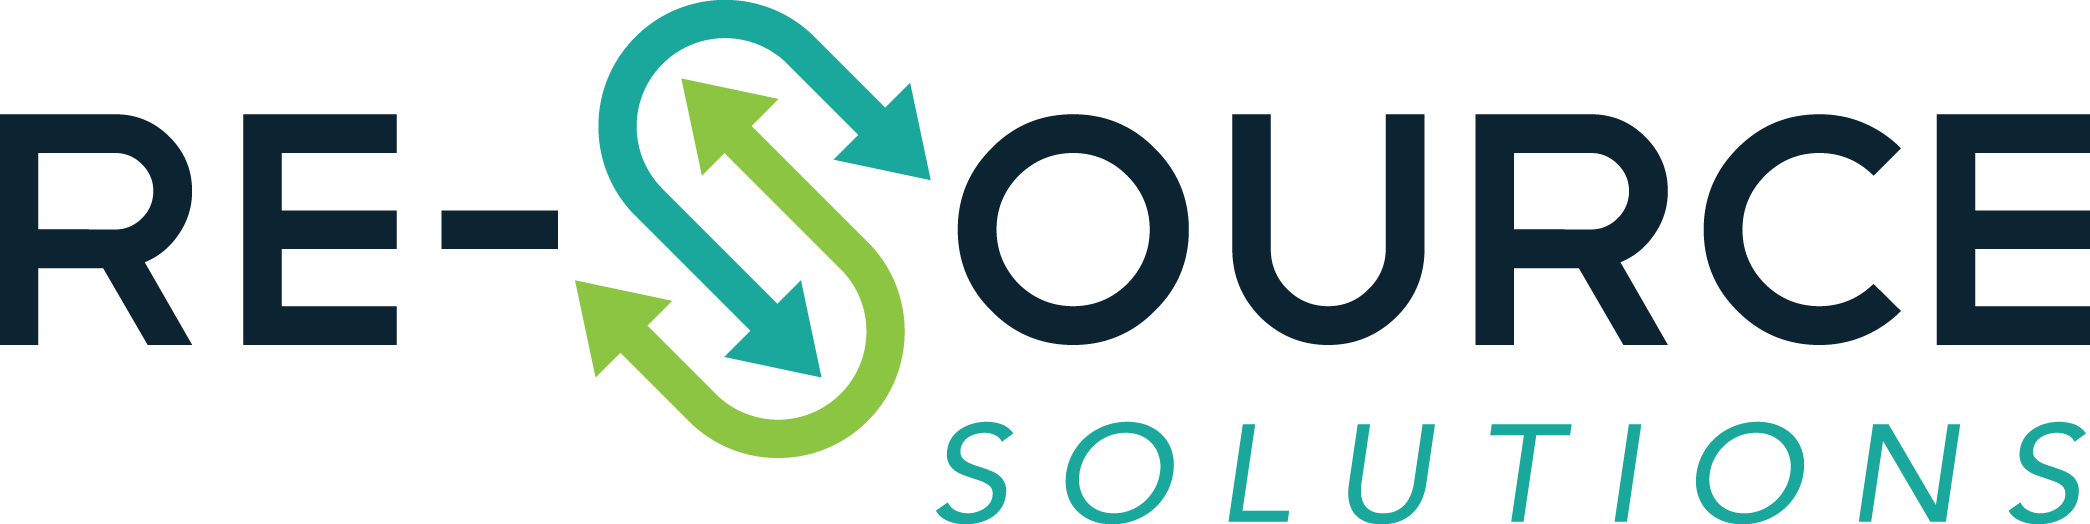 Resource solutions logo primary